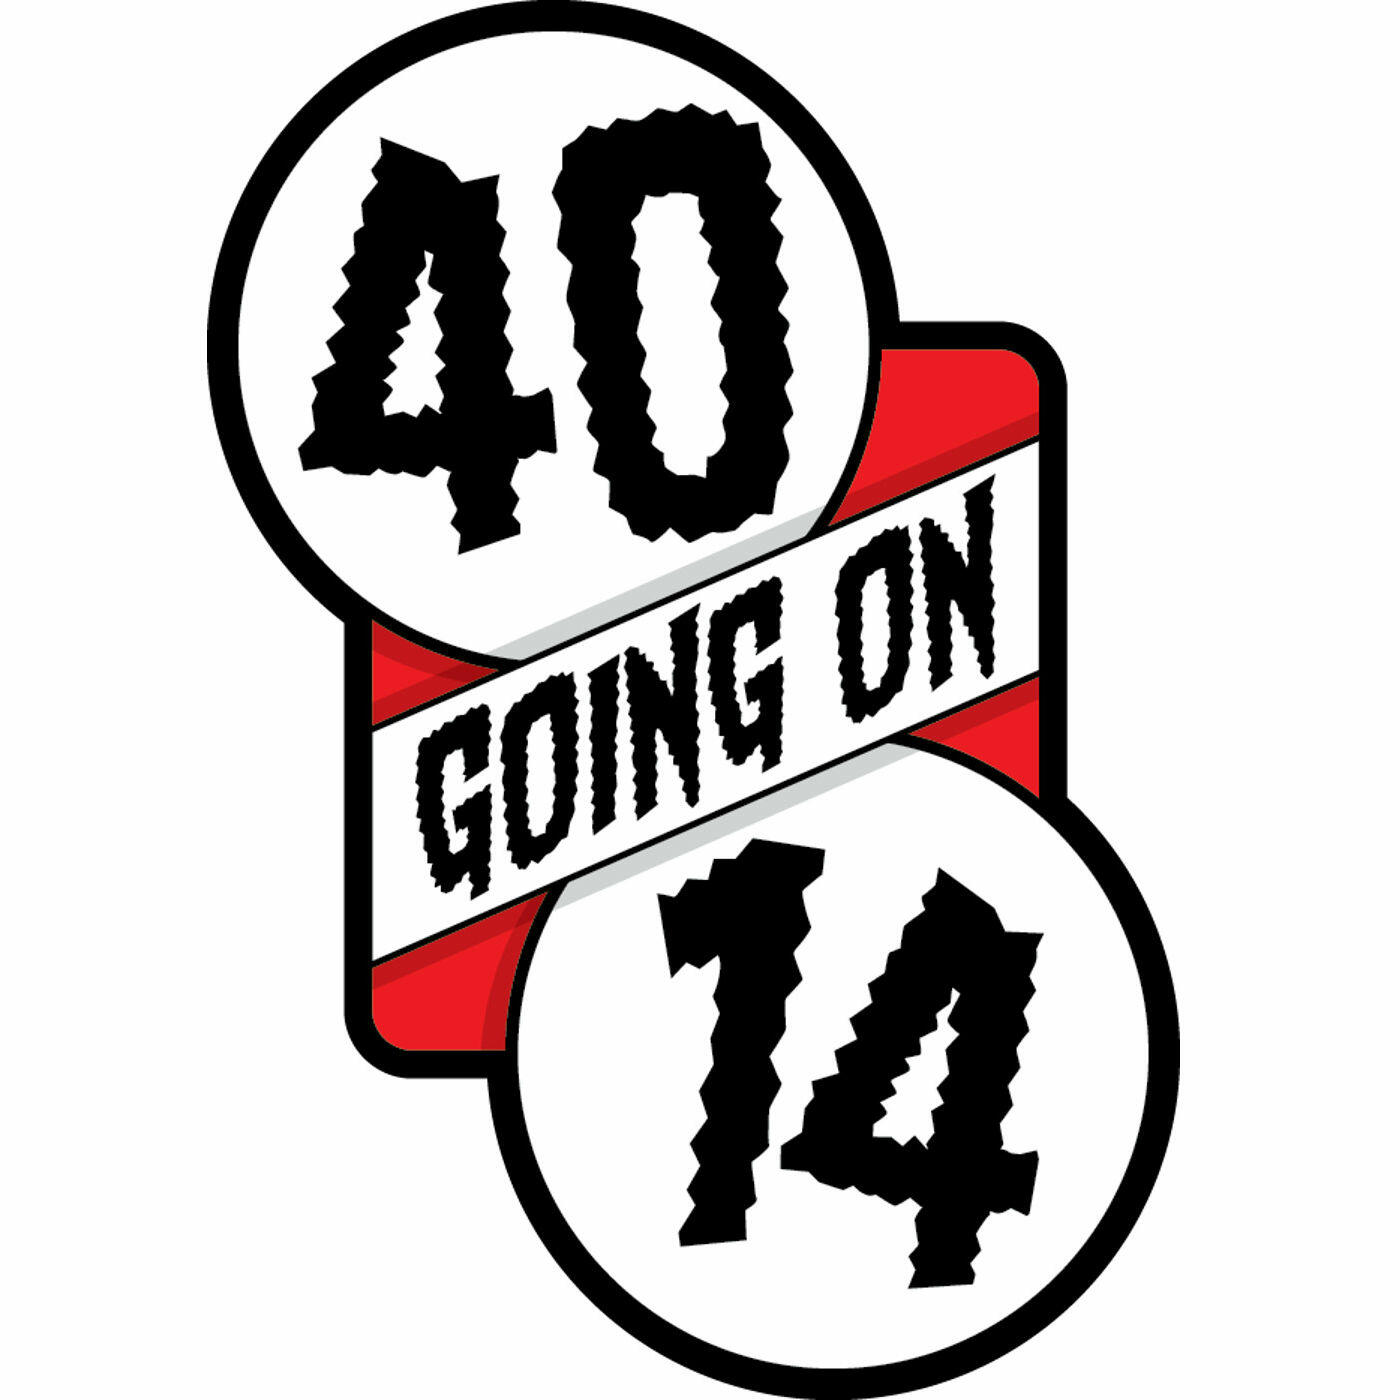 40 Going On 14